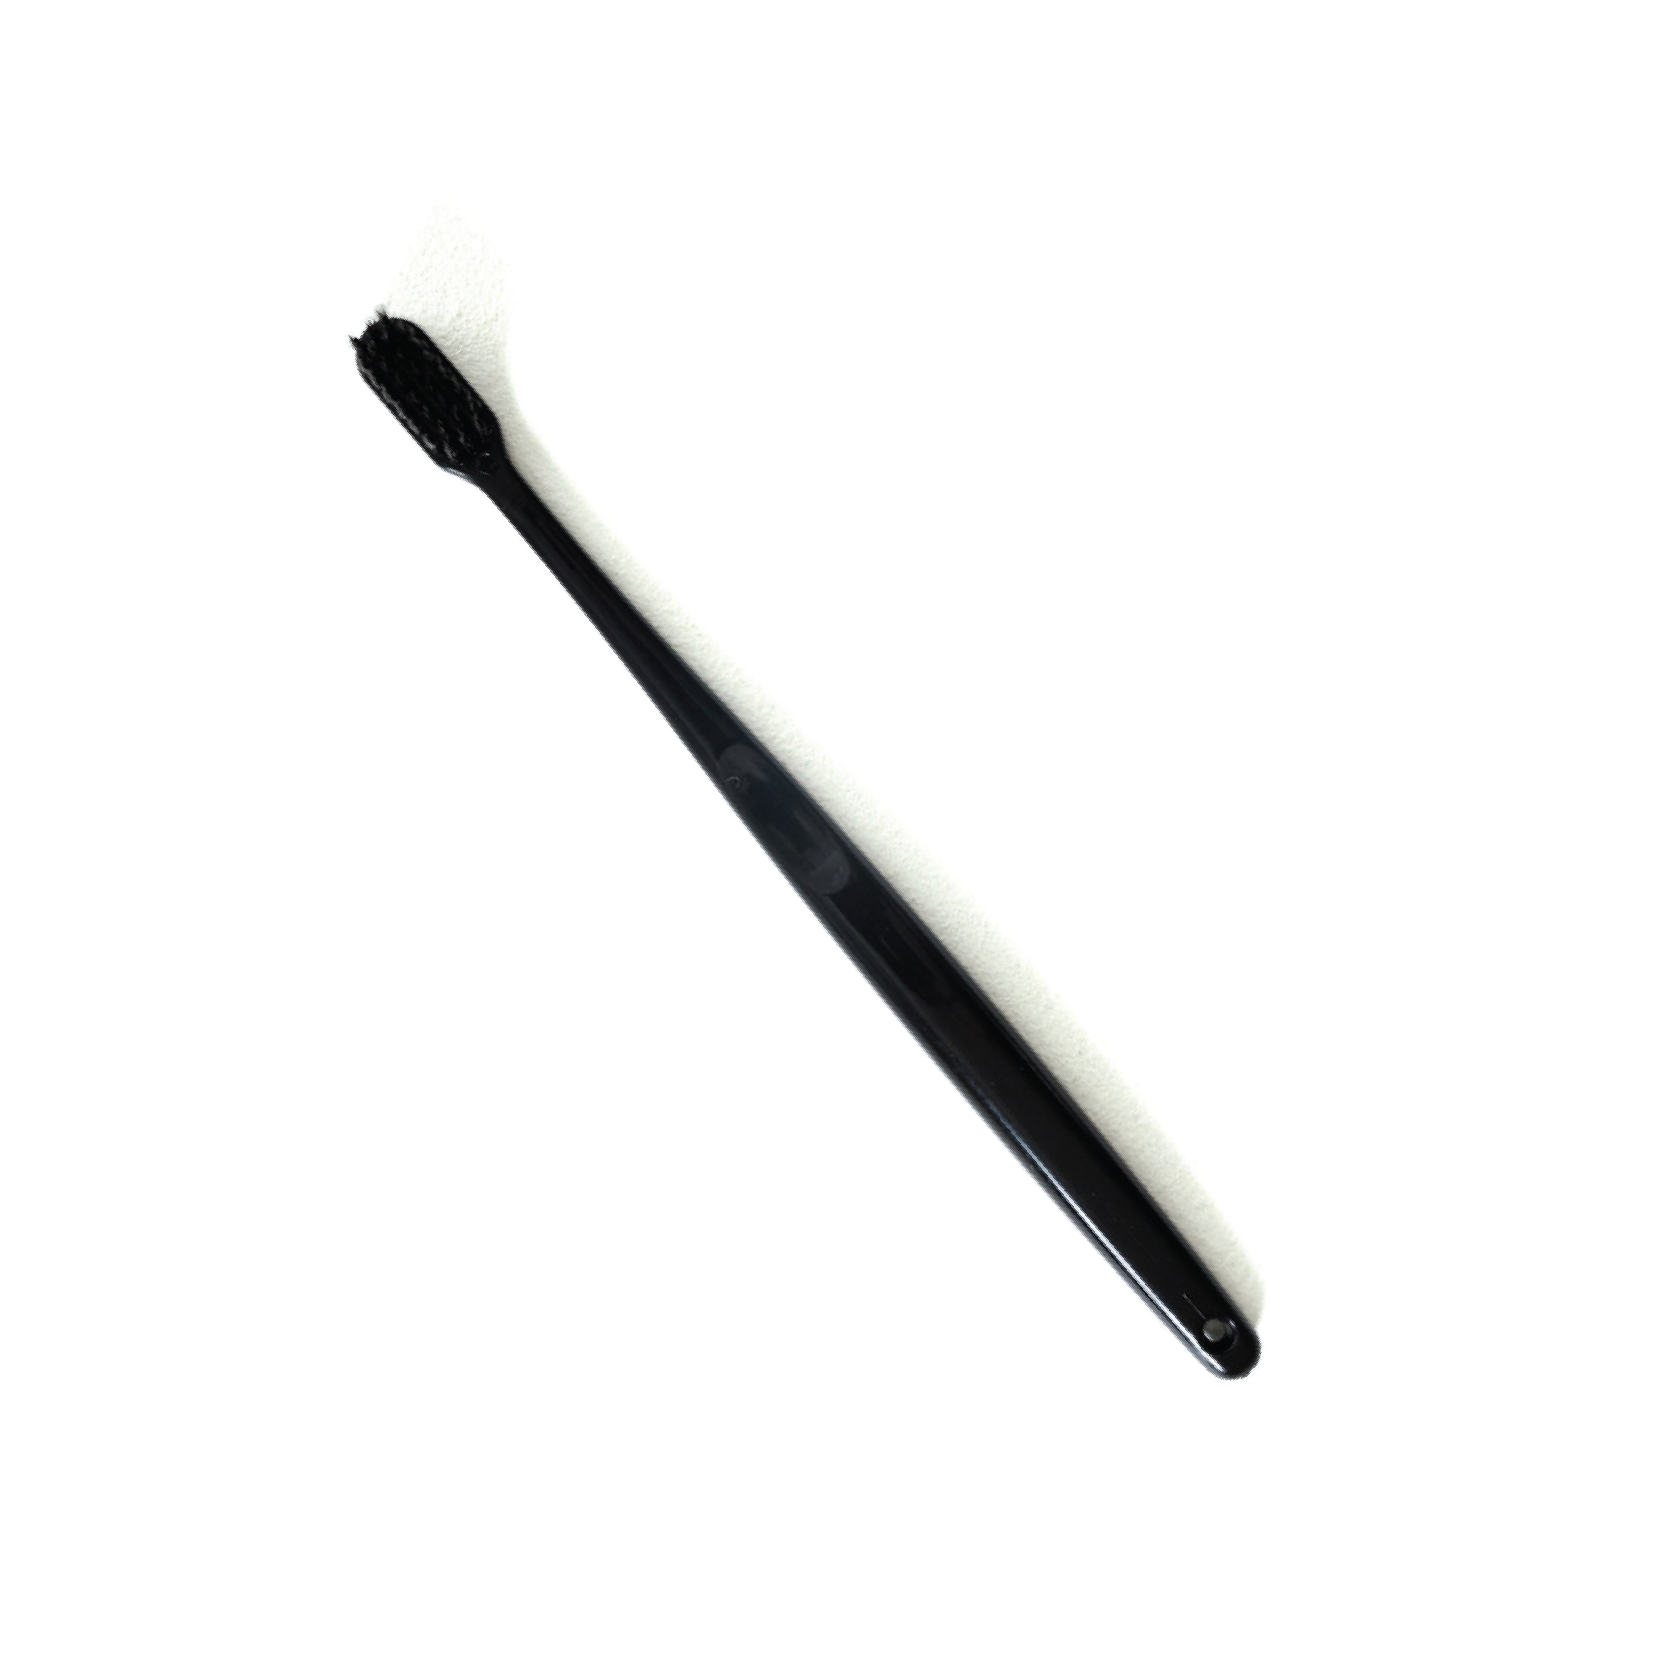 Morihata Binchotan Charcoal Standard Toothbrush - $8 on GoopCharcoal has been found to have a natural detoxifying and whitening effect on teeth. This is a great stocking stuffer for someone who loves to try out new trends!